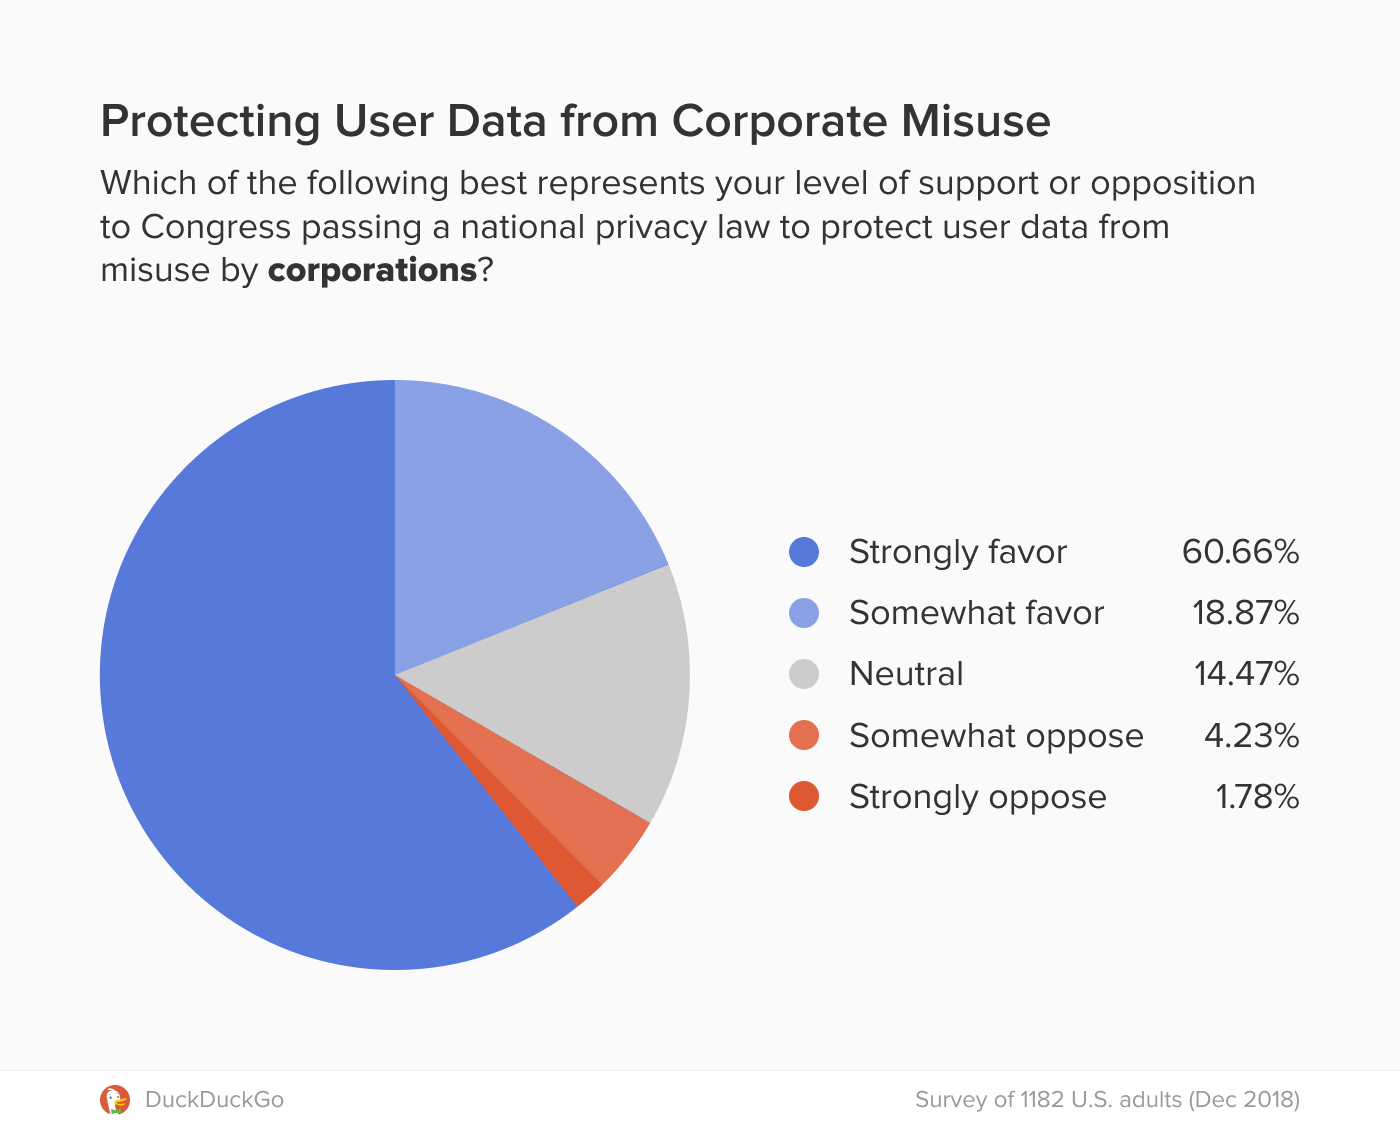 Chart showing support for a privacy law to protect from data misuse by corporations.